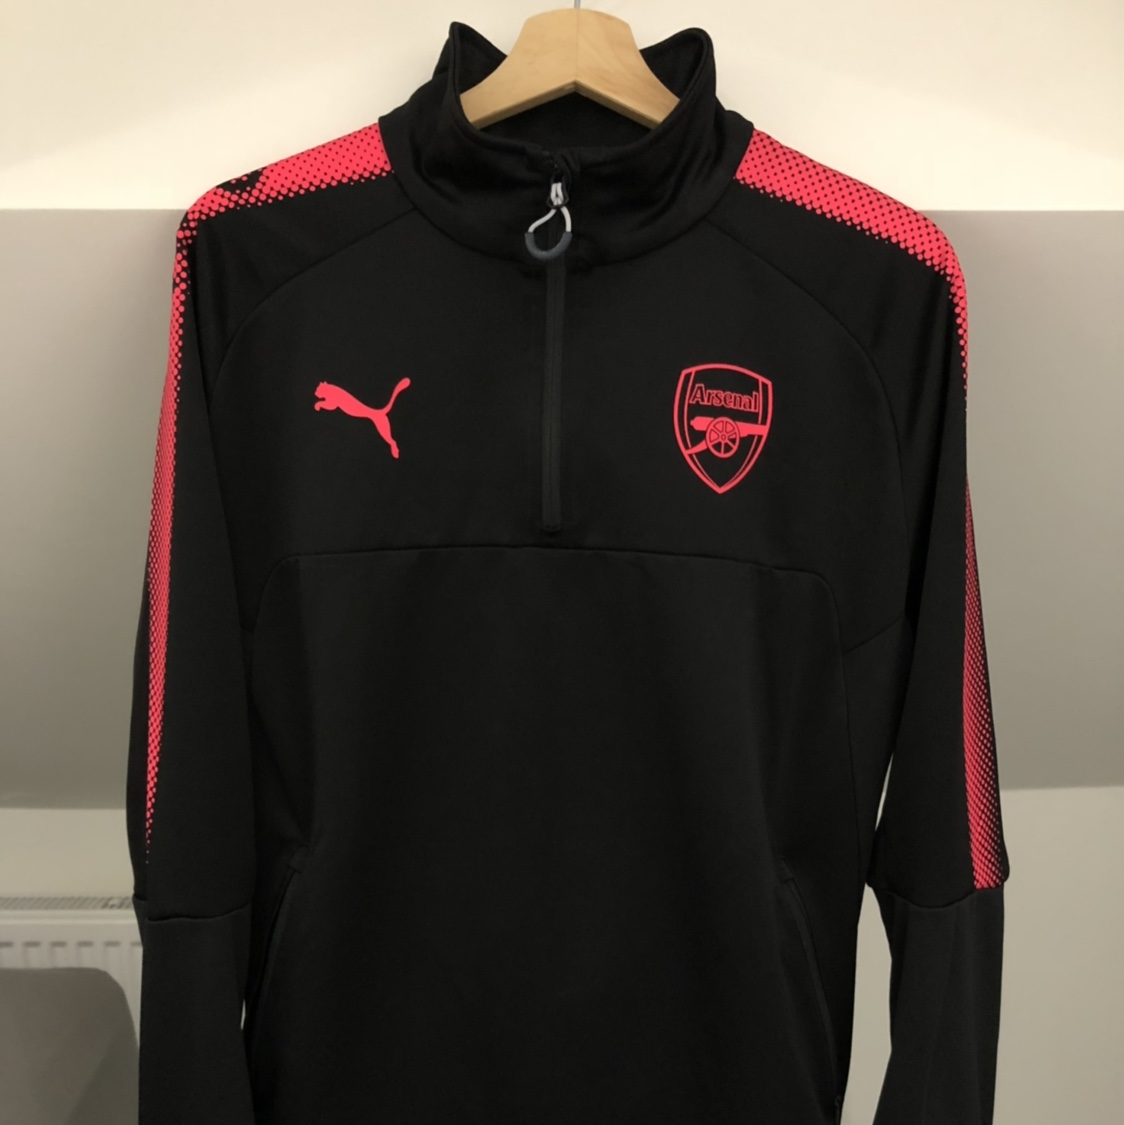 huge discount 2065c 5108a Arsenal Training Kit, 17/18 season - Black and... - Depop